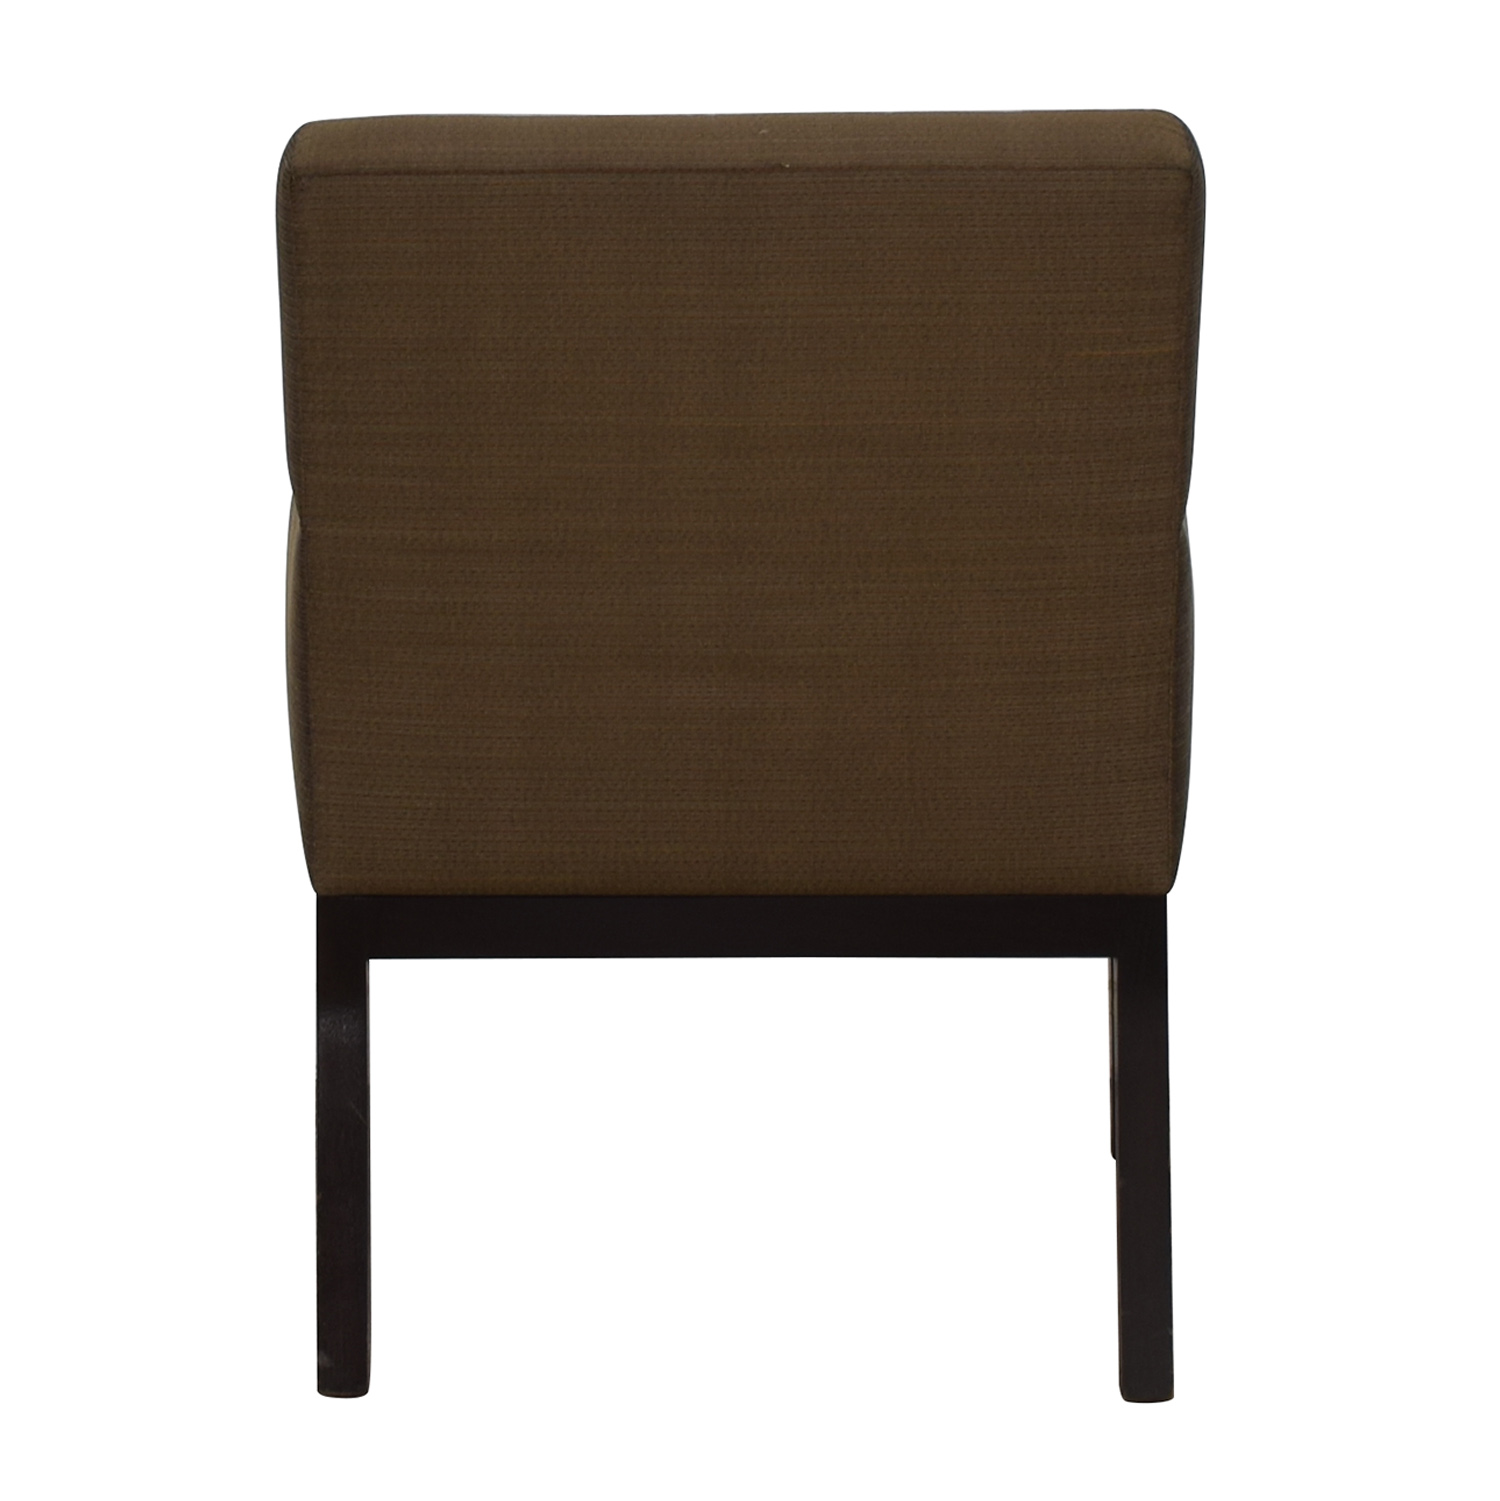 Furniture Masters Furniture Masters Stripped Brown Accent Chair price